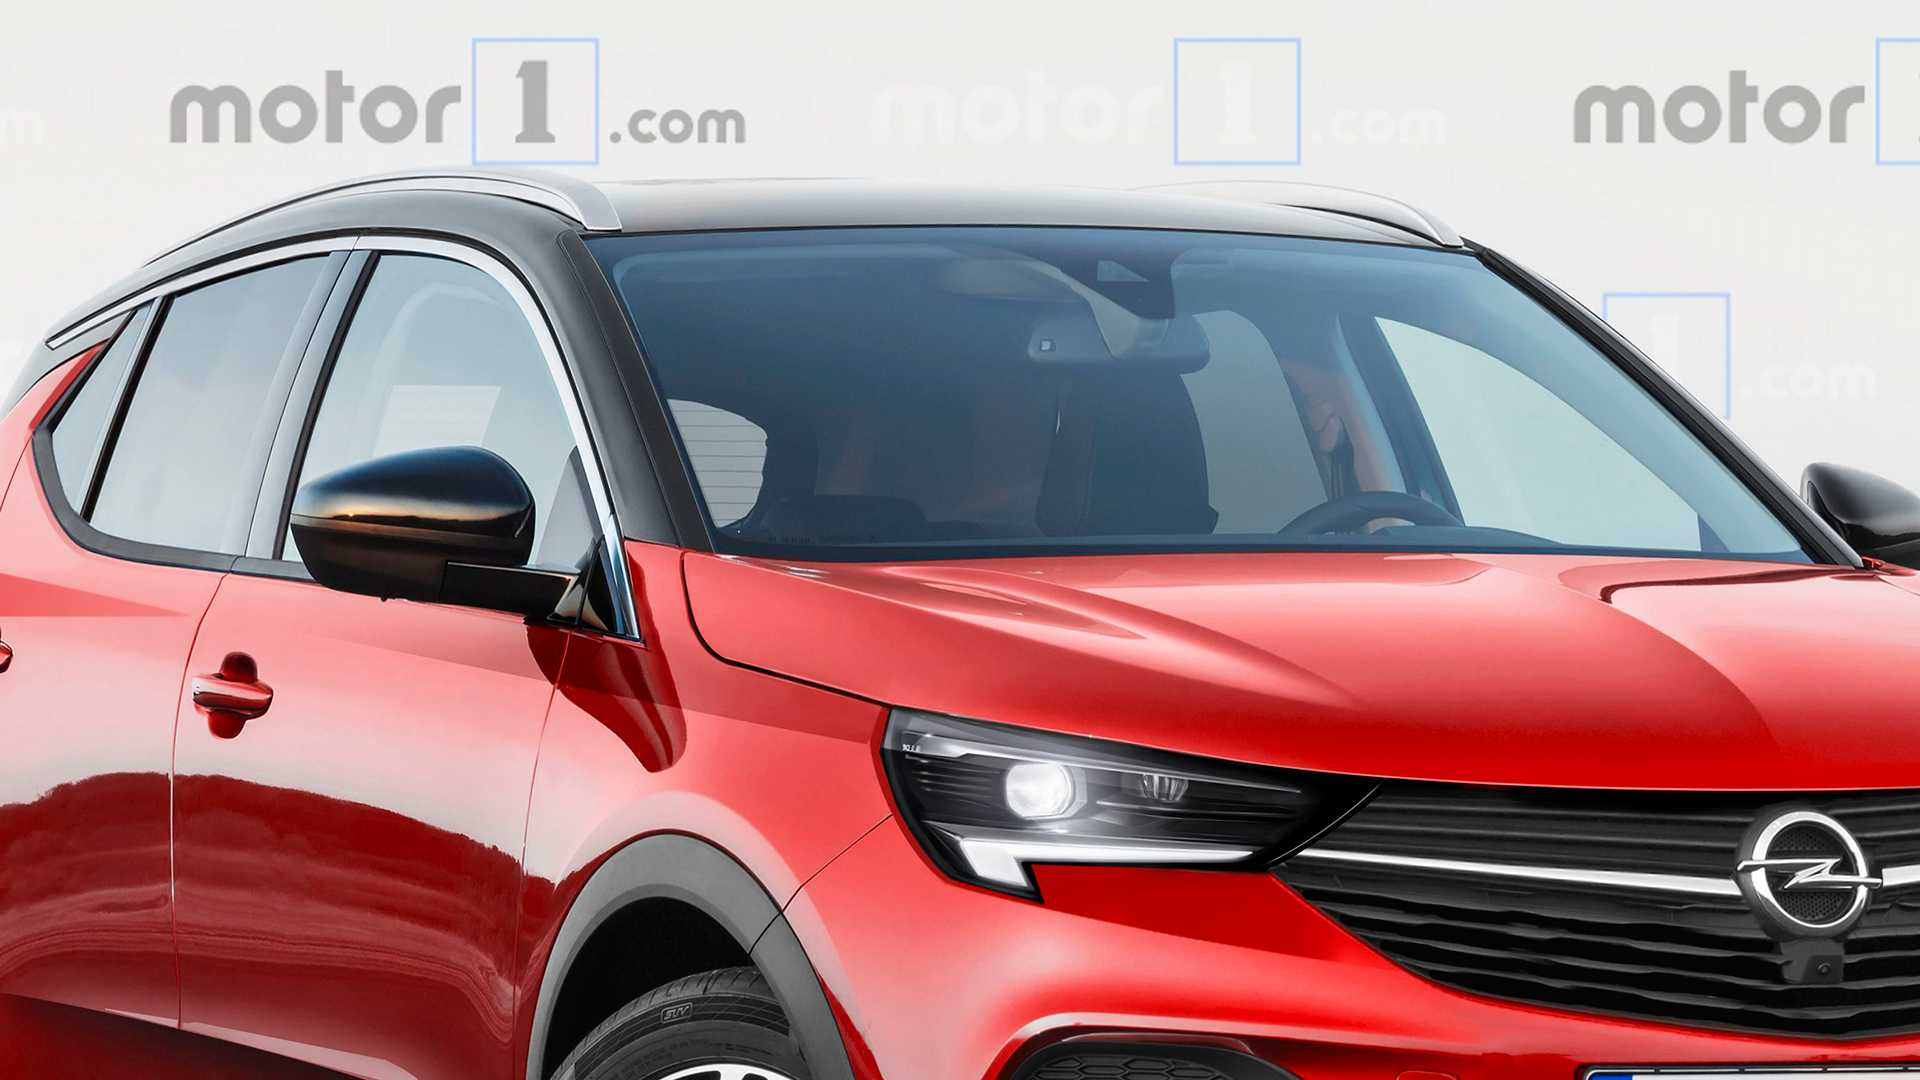 76 The Nuevo Opel Mokka X 2020 Redesign And Review